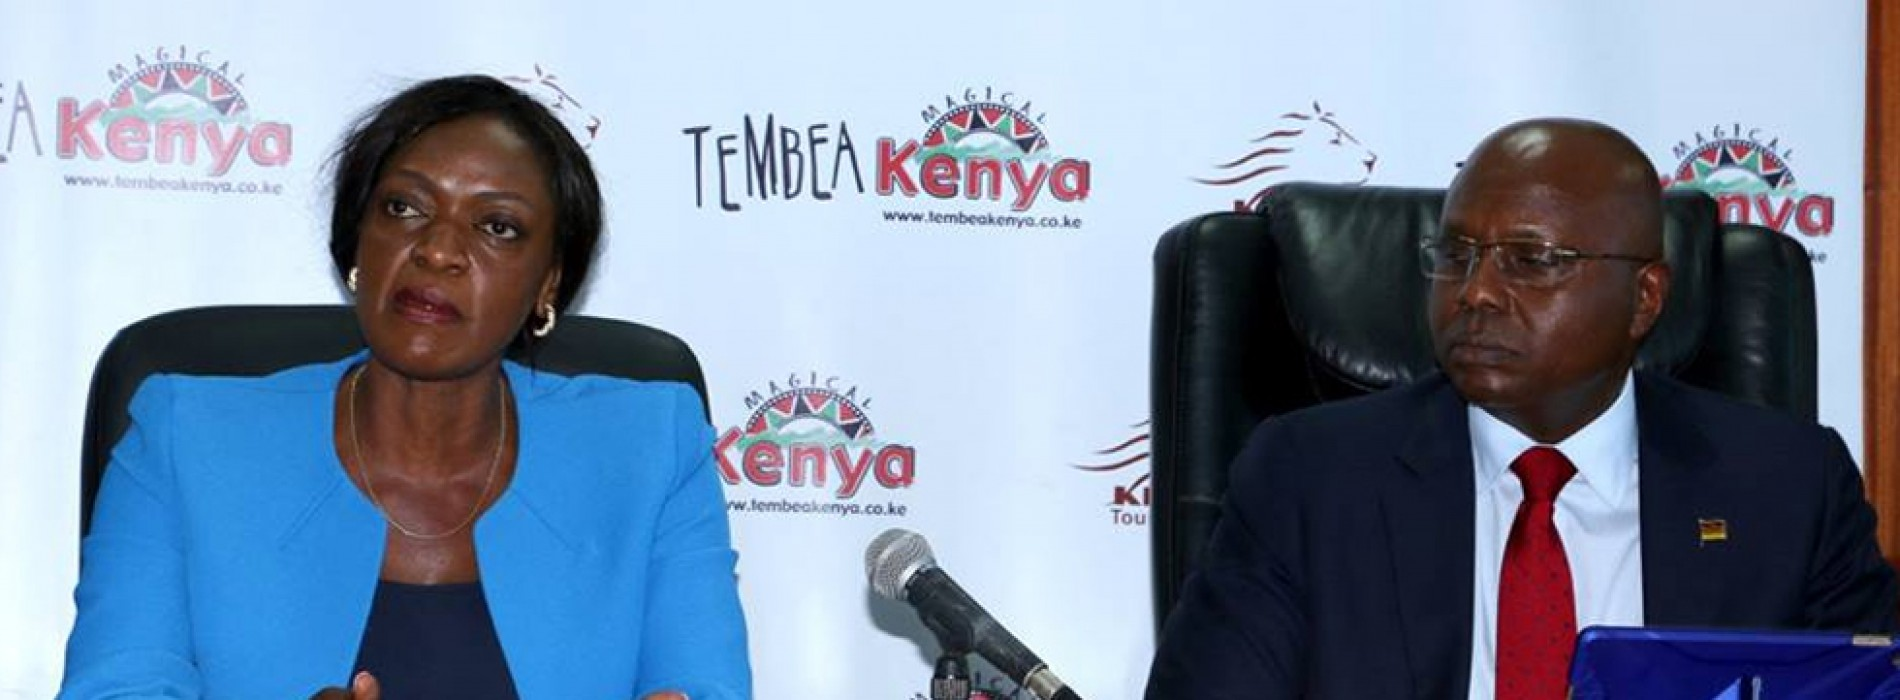 Kenya Tourism Board officially appoints new CEO, Dr. Betty Radier